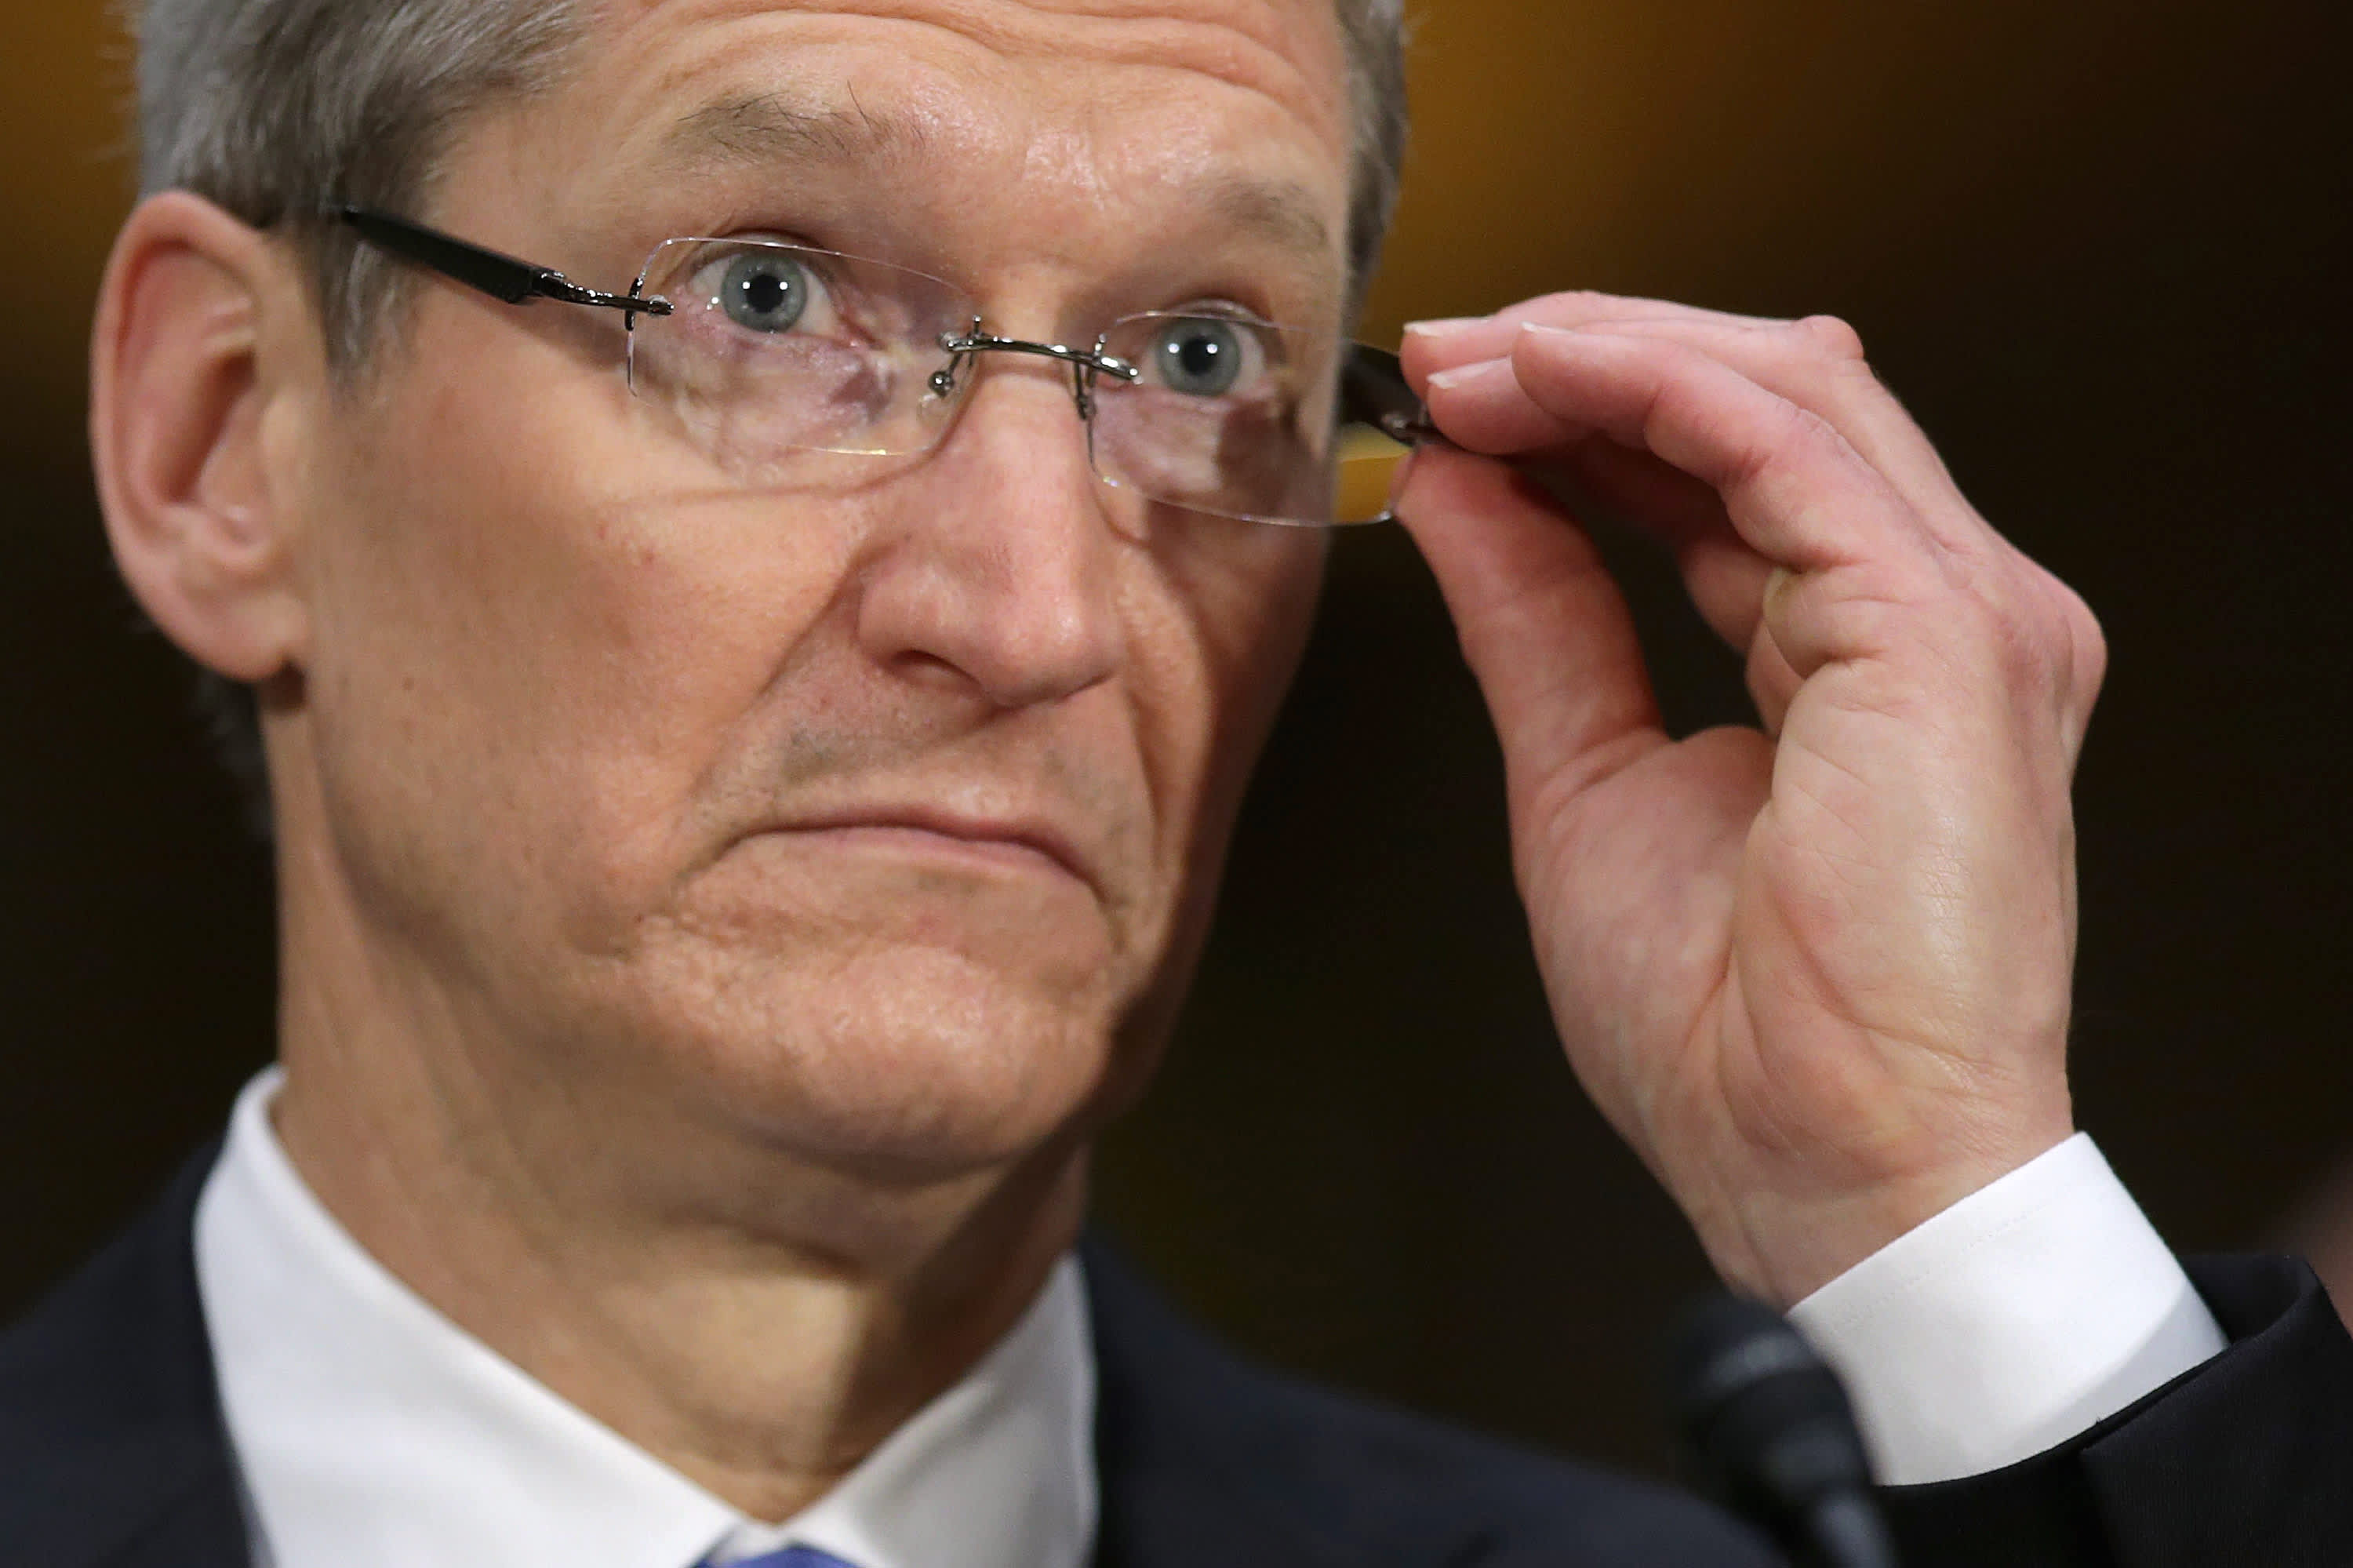 Apple drops on report that Justice Department is eyeing antitrust probe